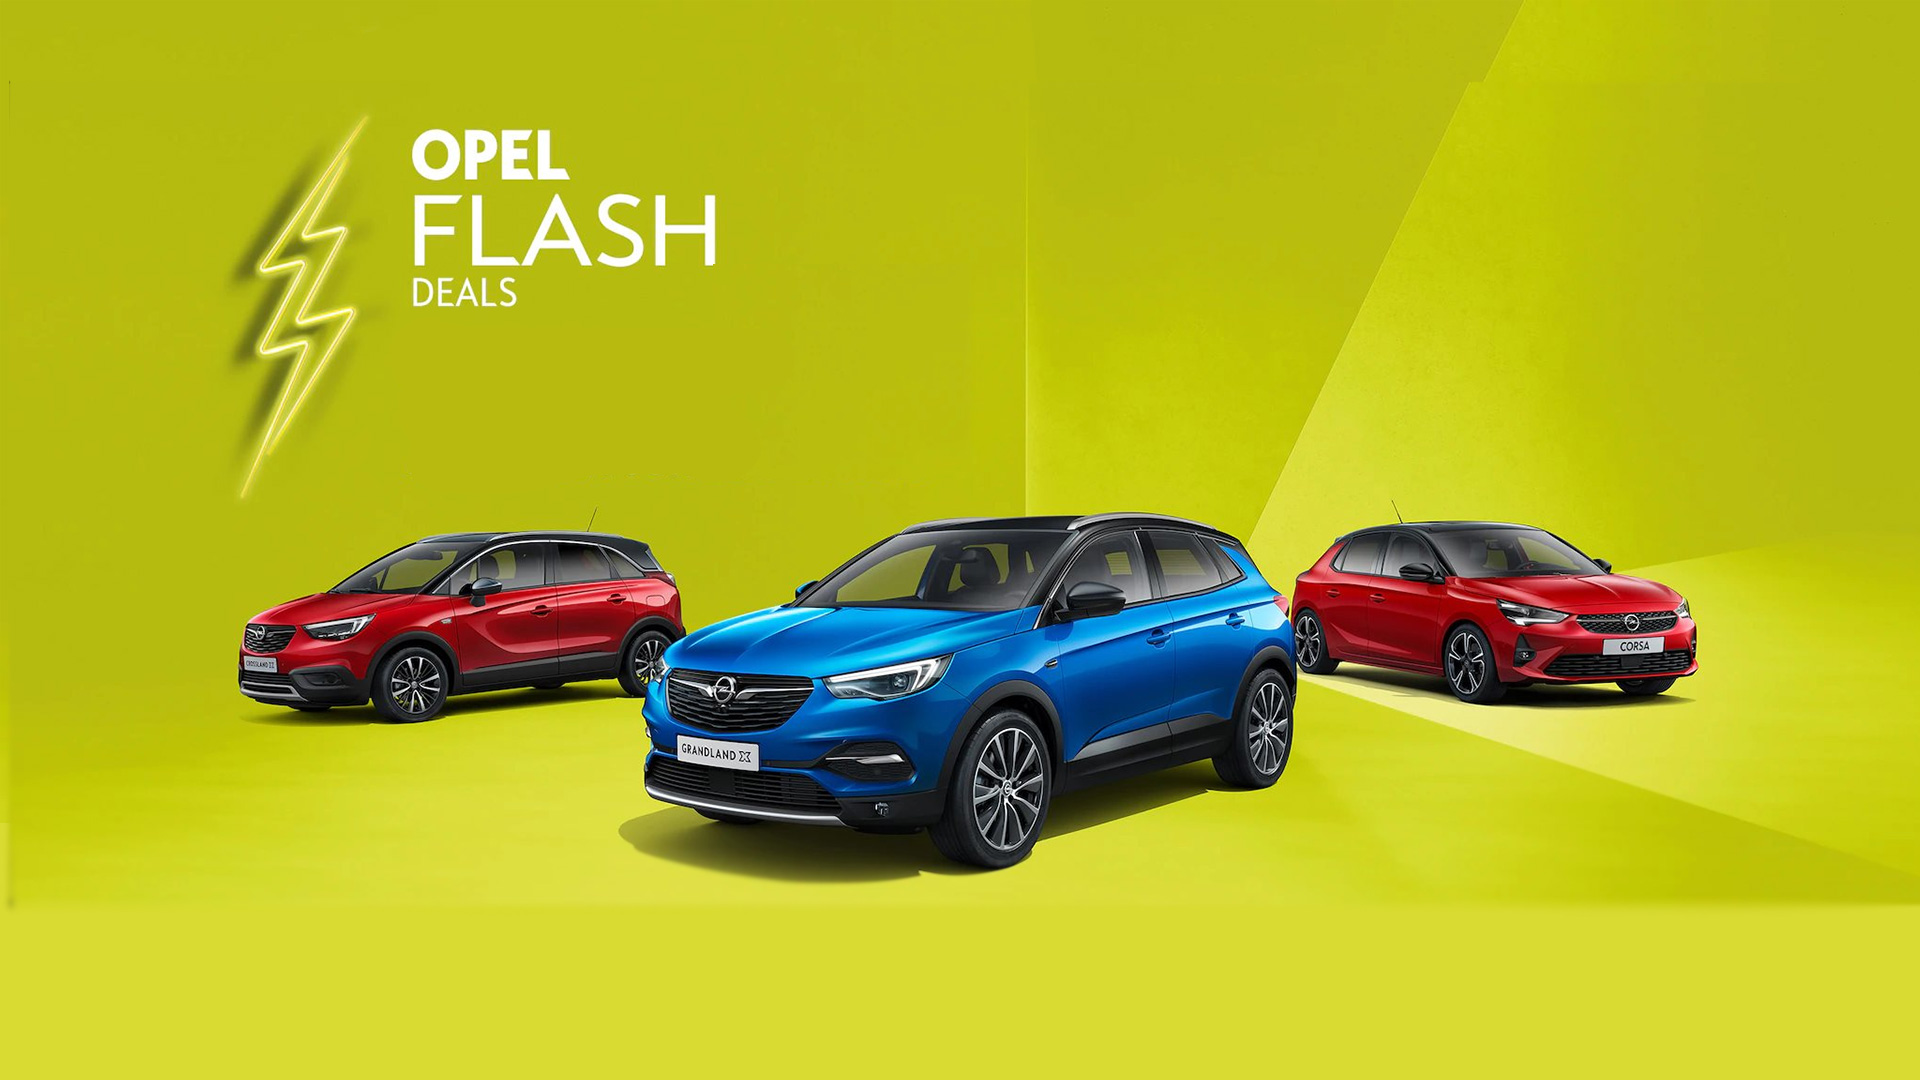 Opel Flash Deals